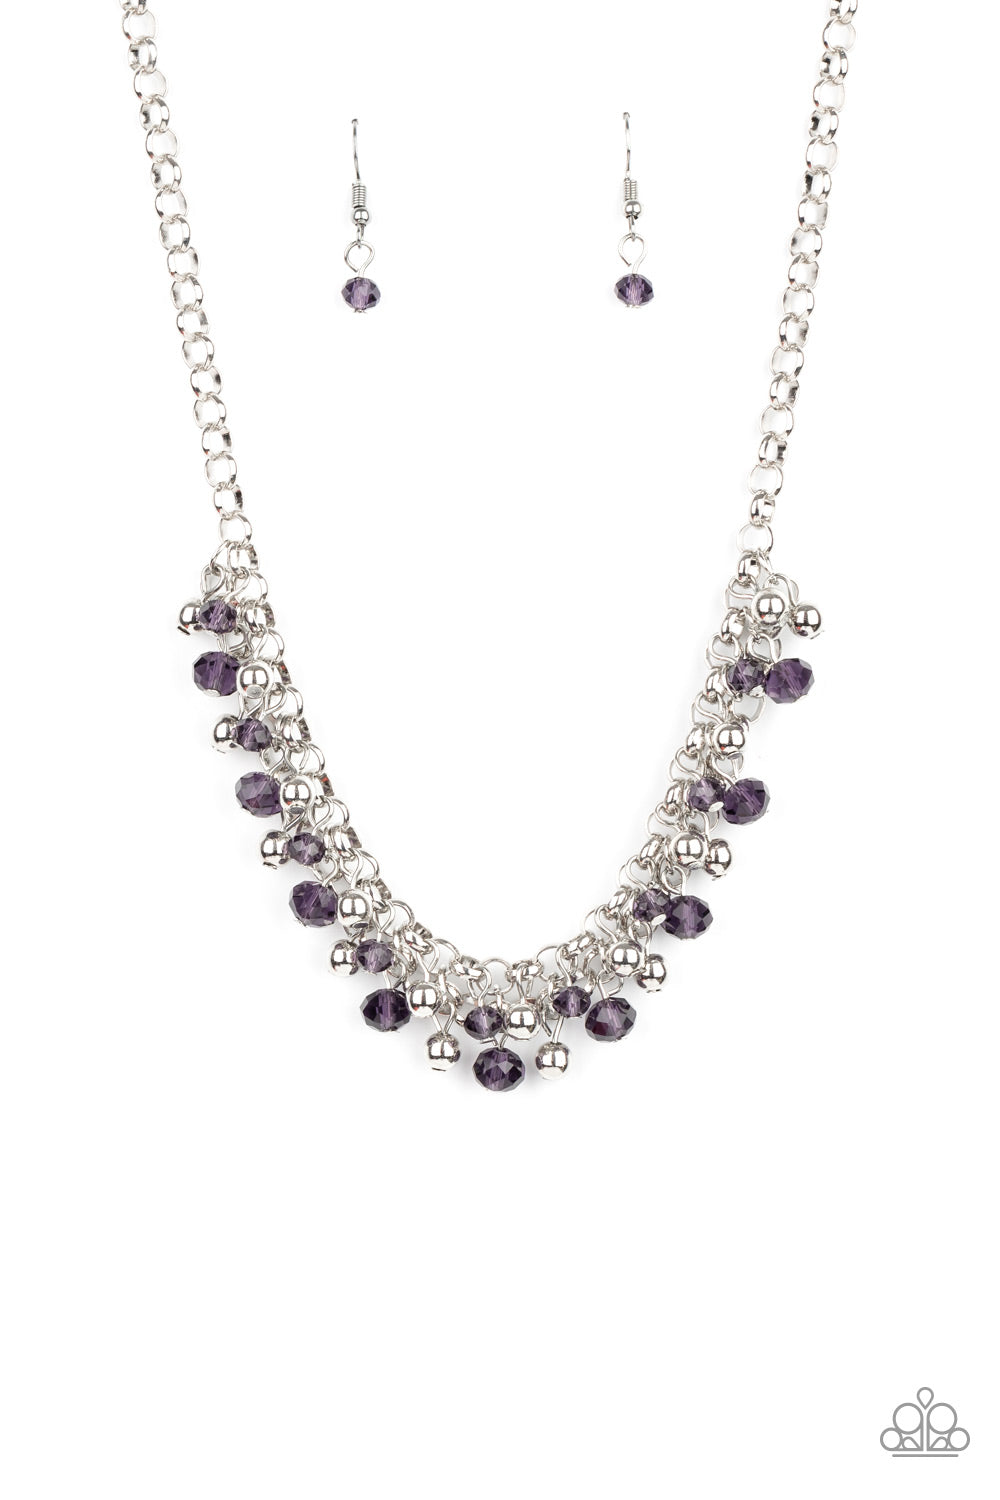 five-dollar-jewelry-trust-fund-baby-purple-necklace-paparazzi-accessories